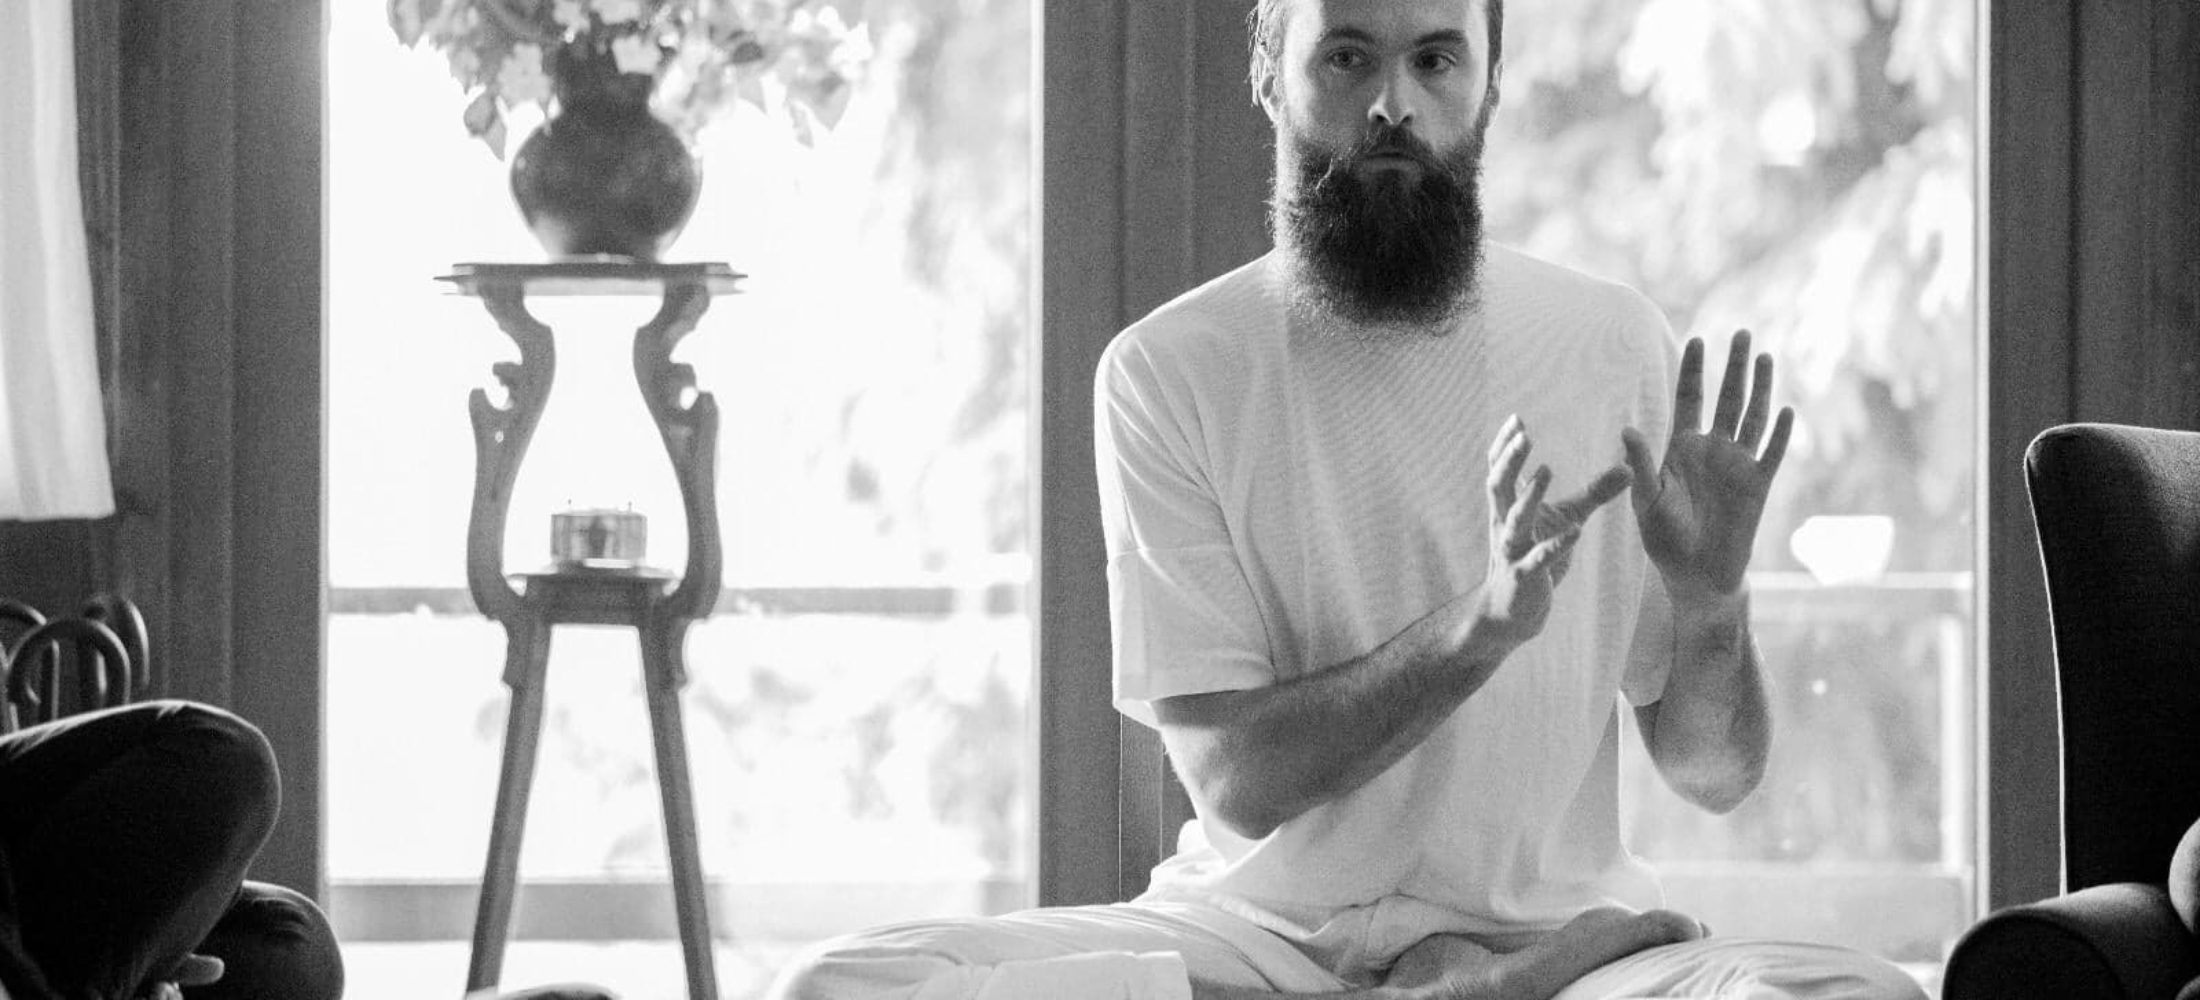 Yoga&Healing - A chance for life and love